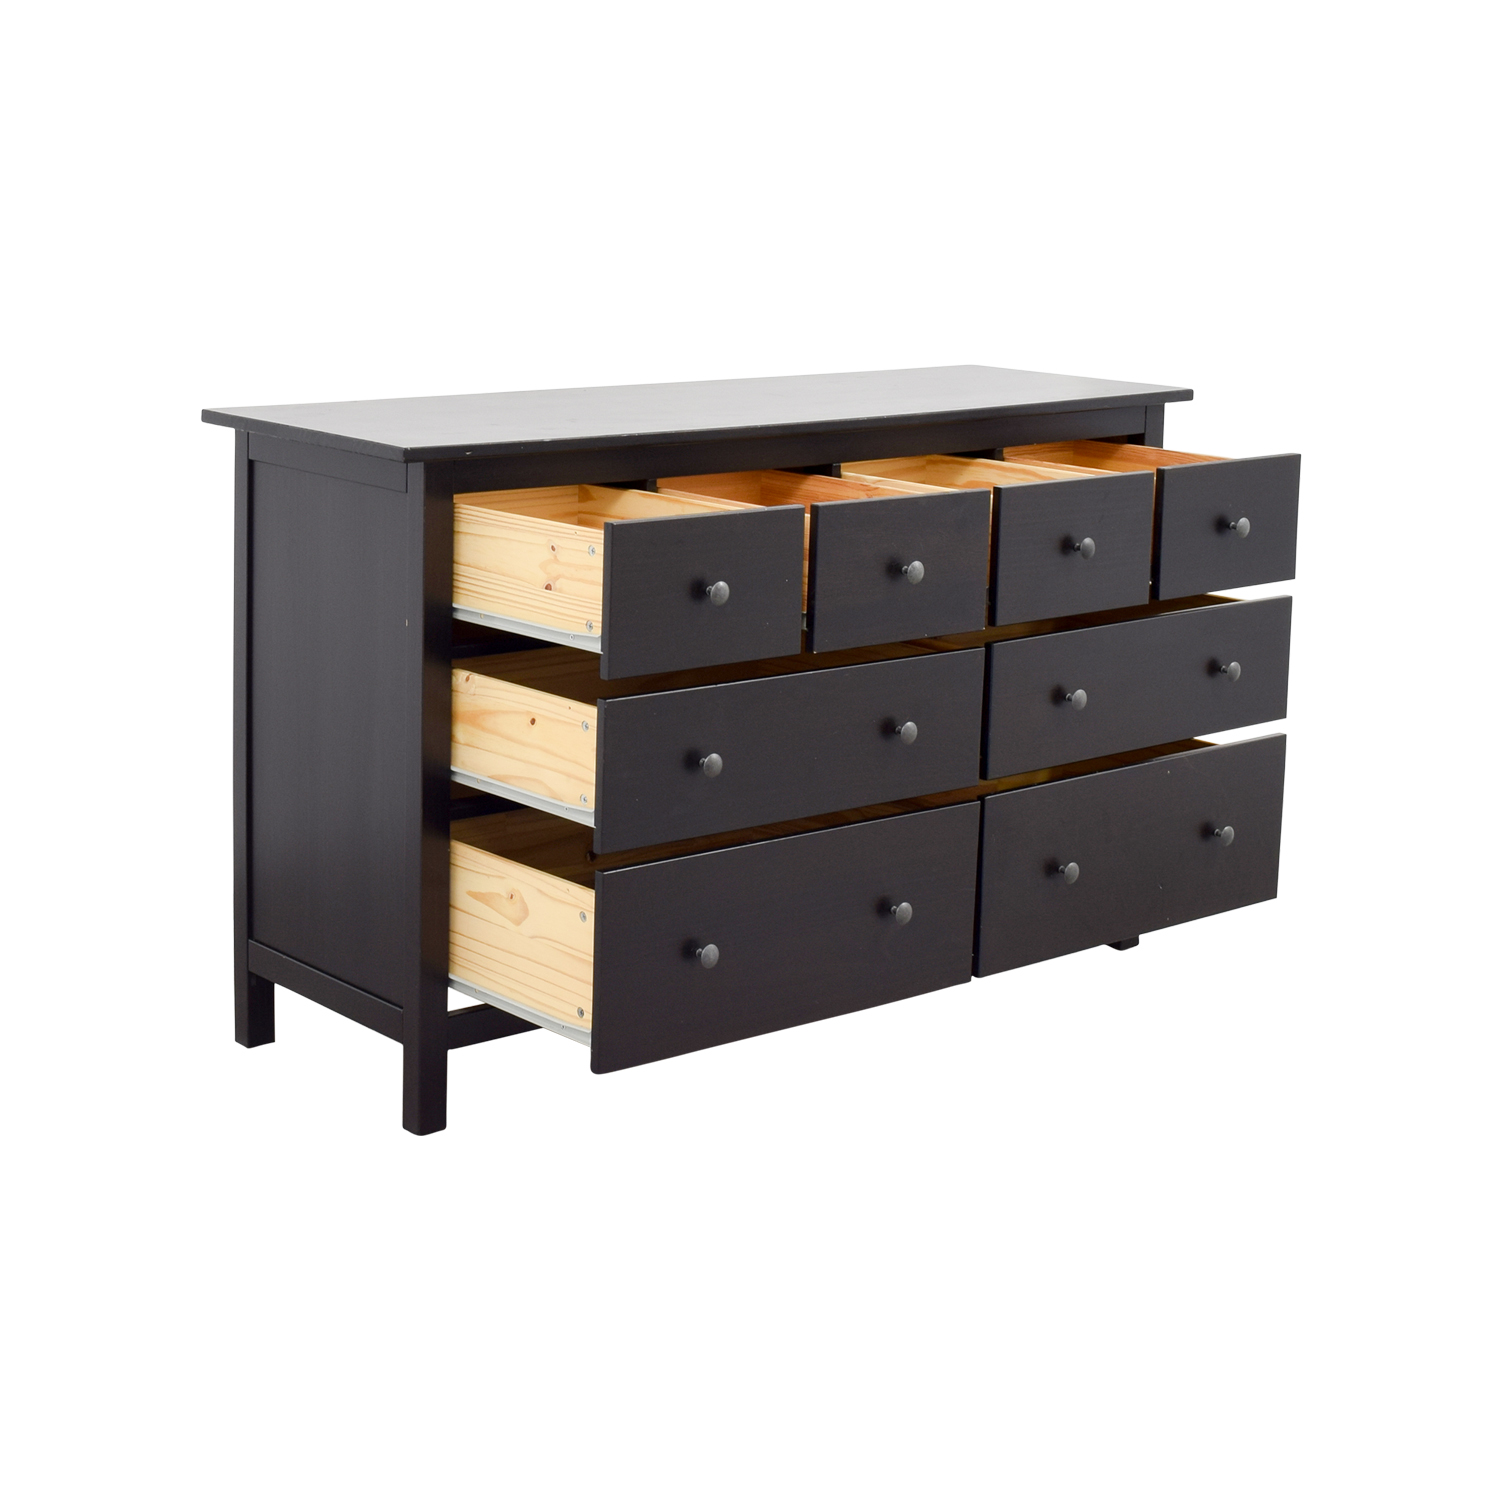 28 off ikea ikea hemnes black dresser storage. Black Bedroom Furniture Sets. Home Design Ideas